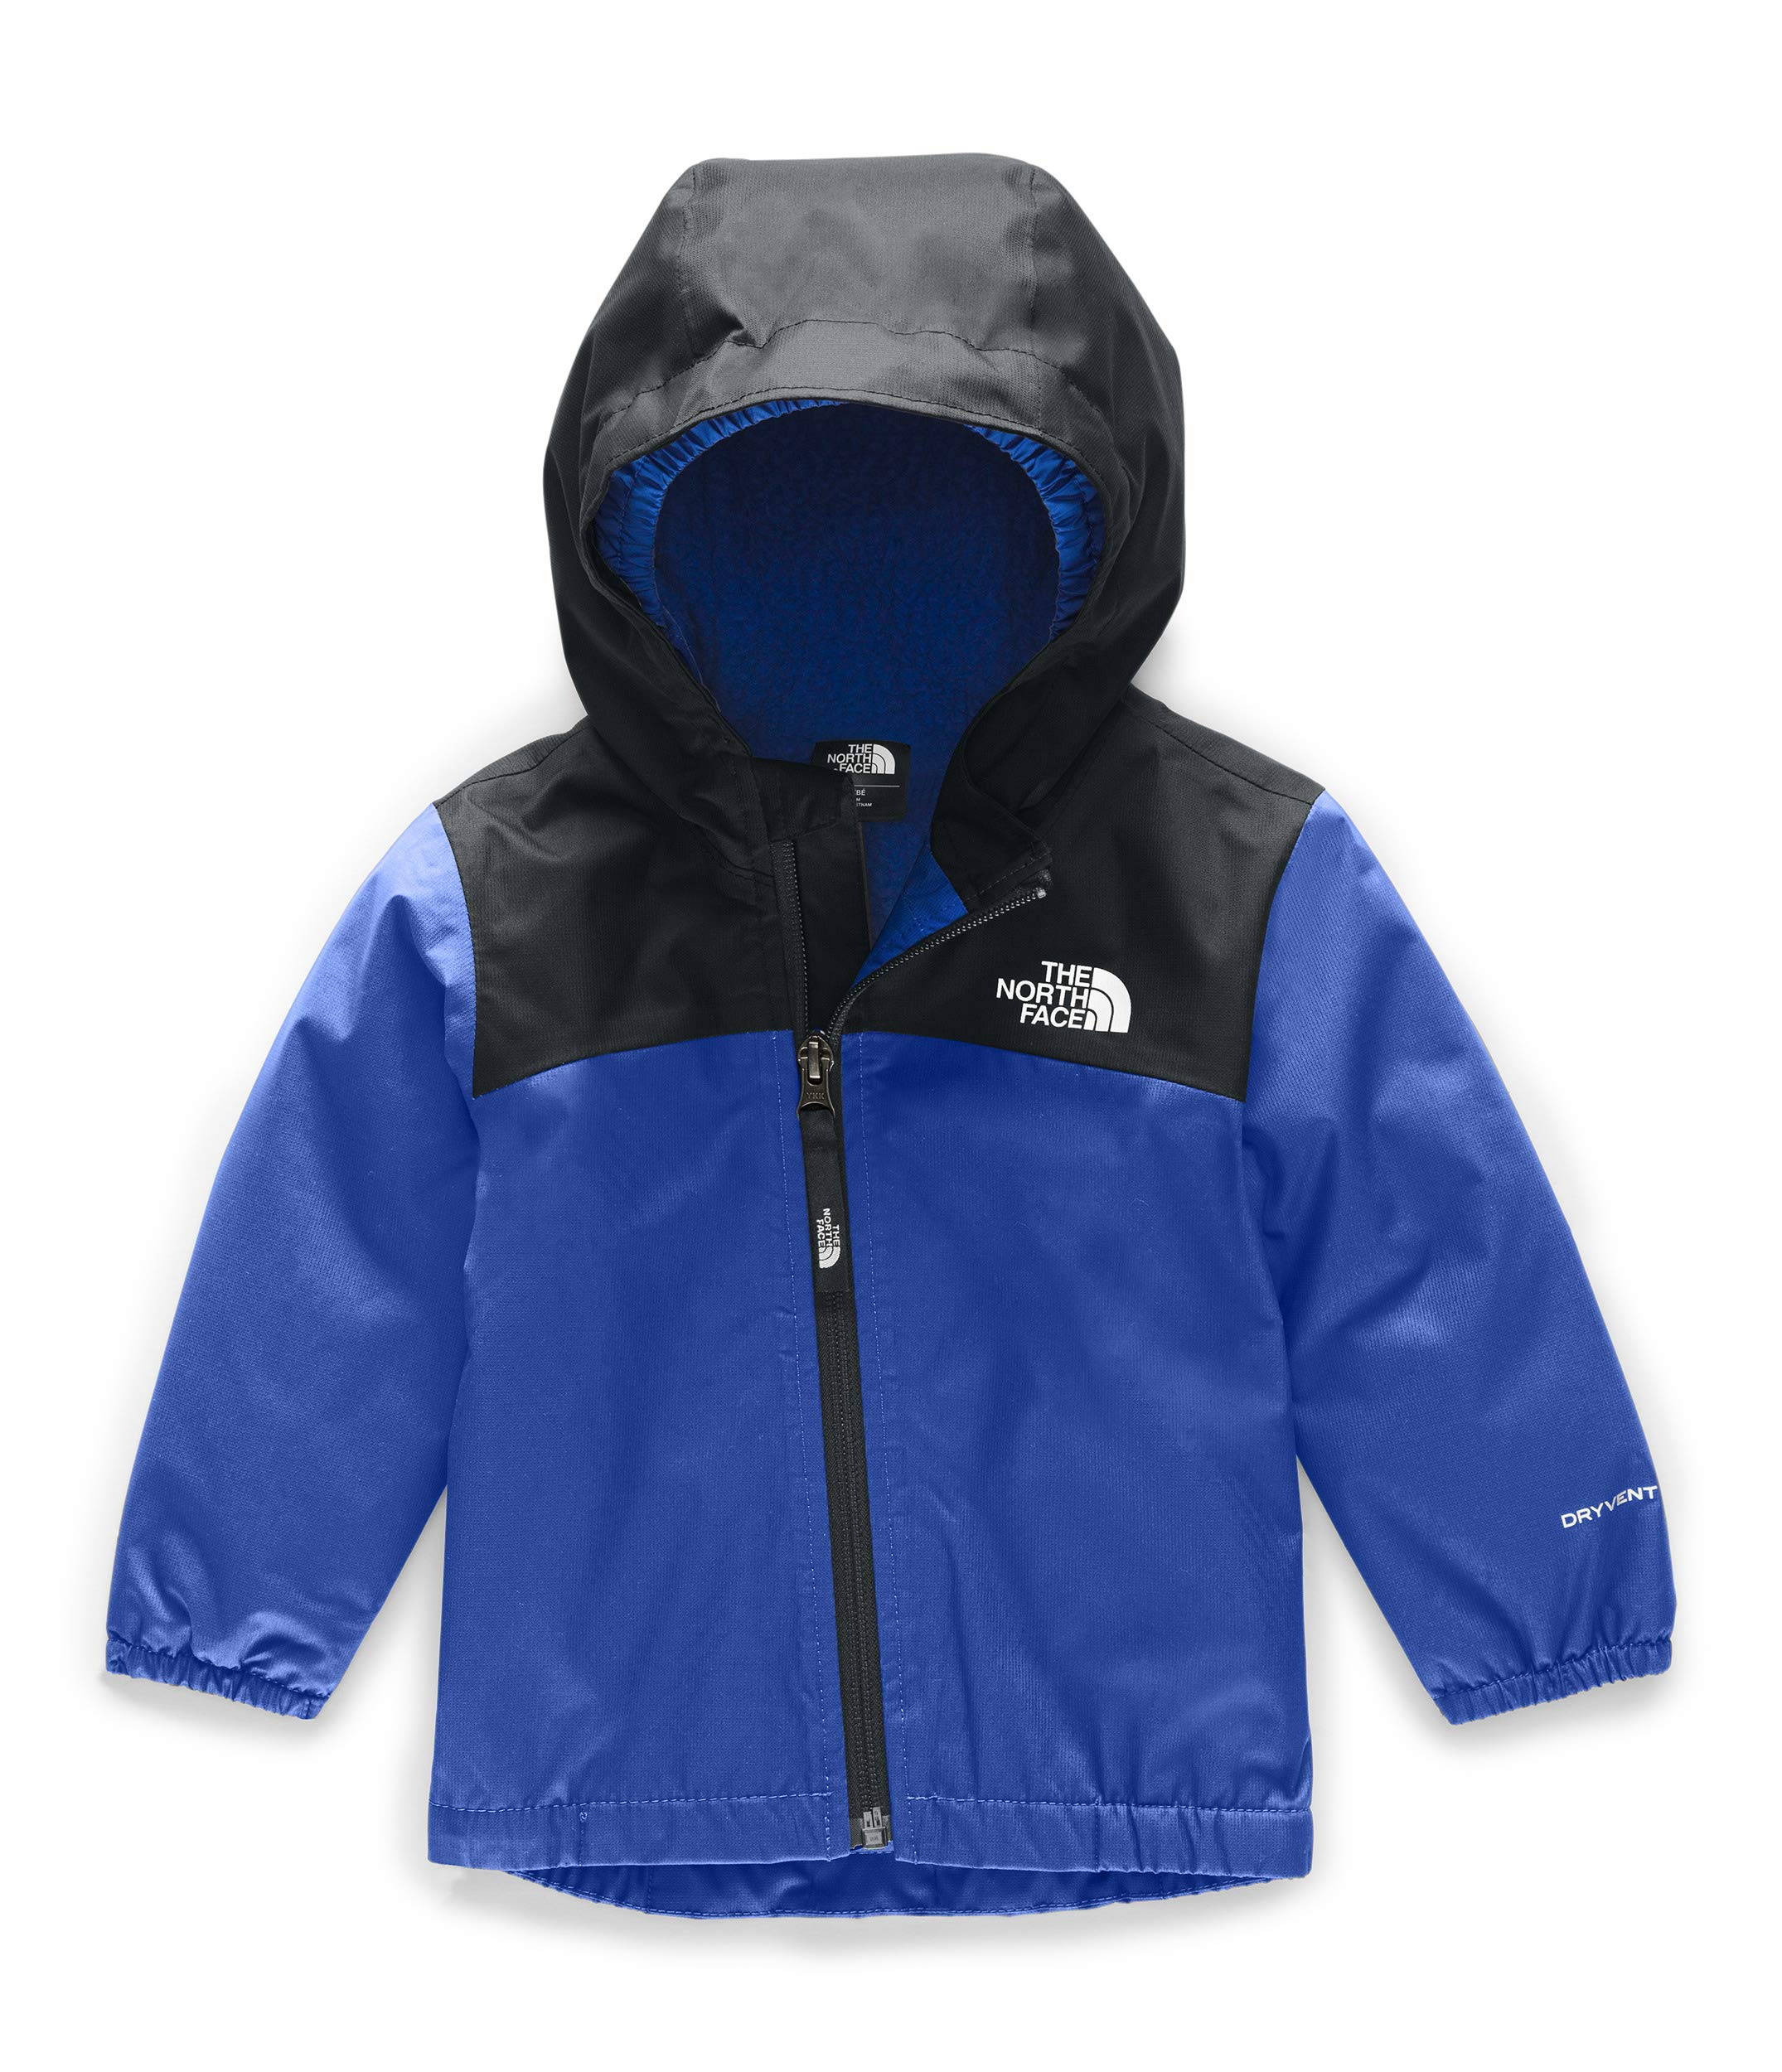 The North Face Infant Warm Storm Jacket by The North Face